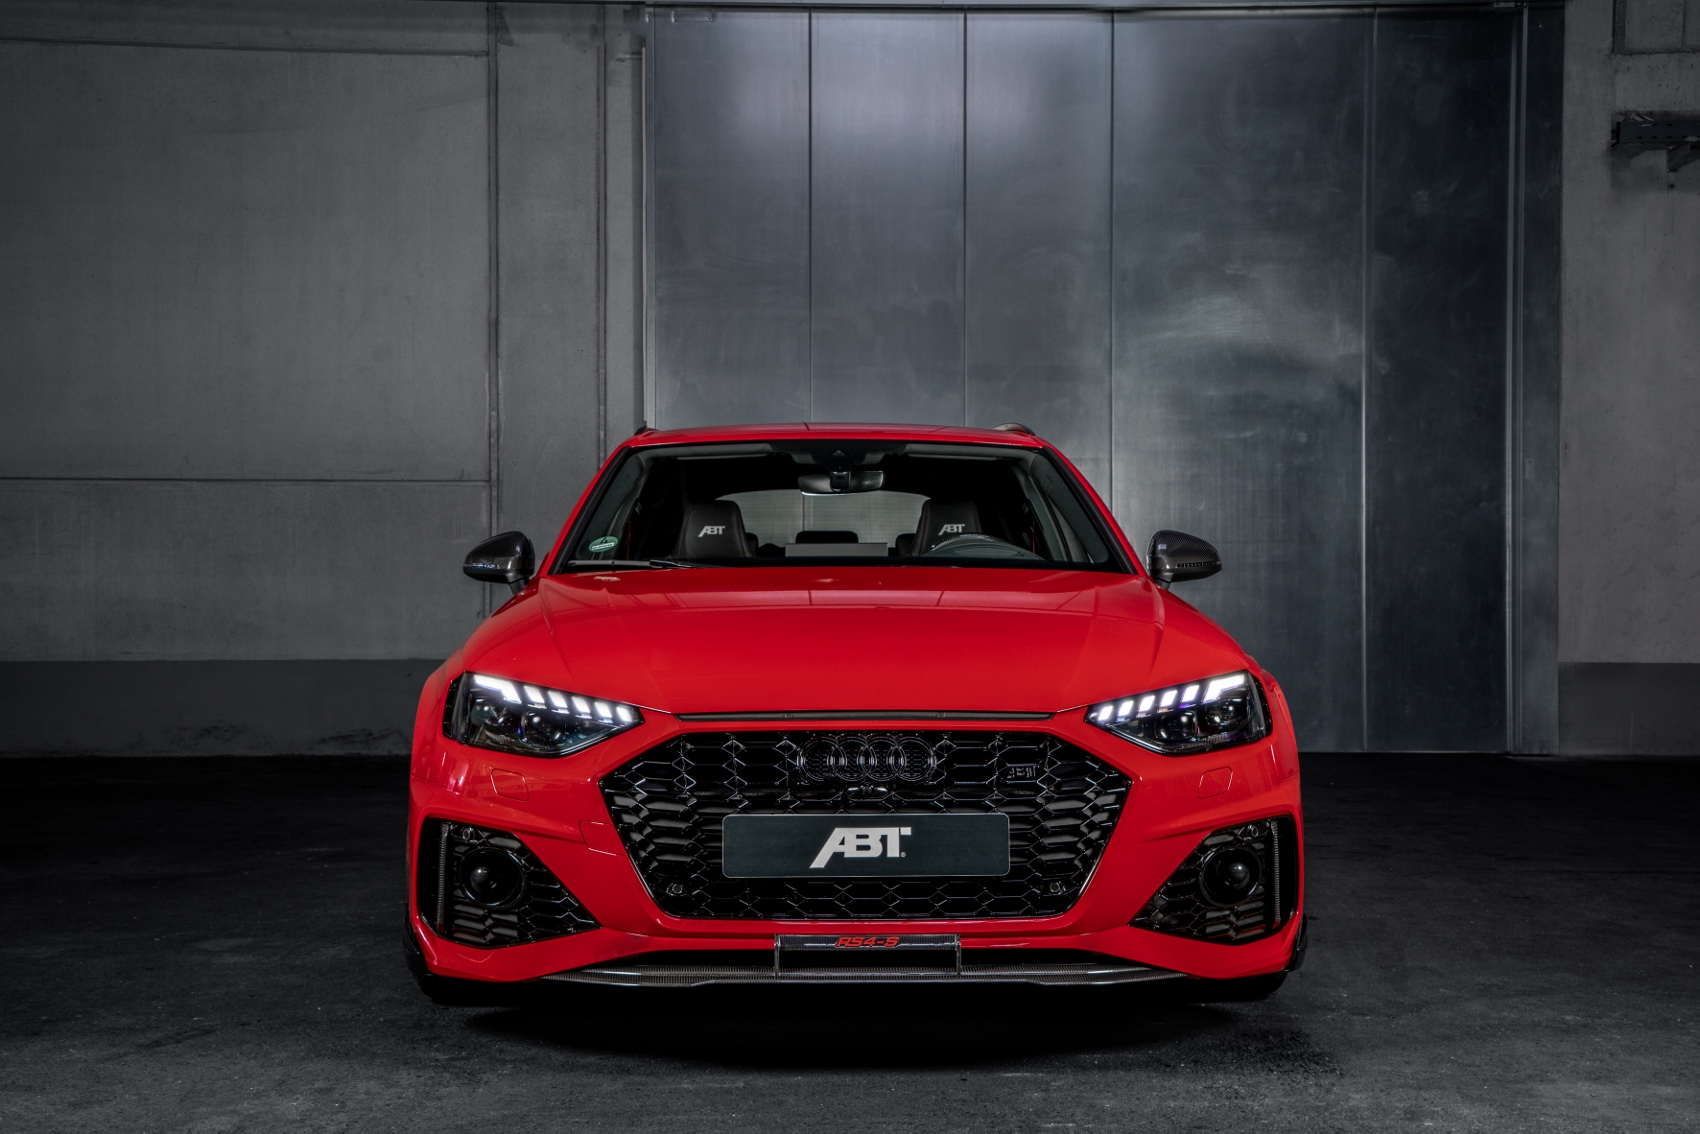 ABT_RS4-S (4)